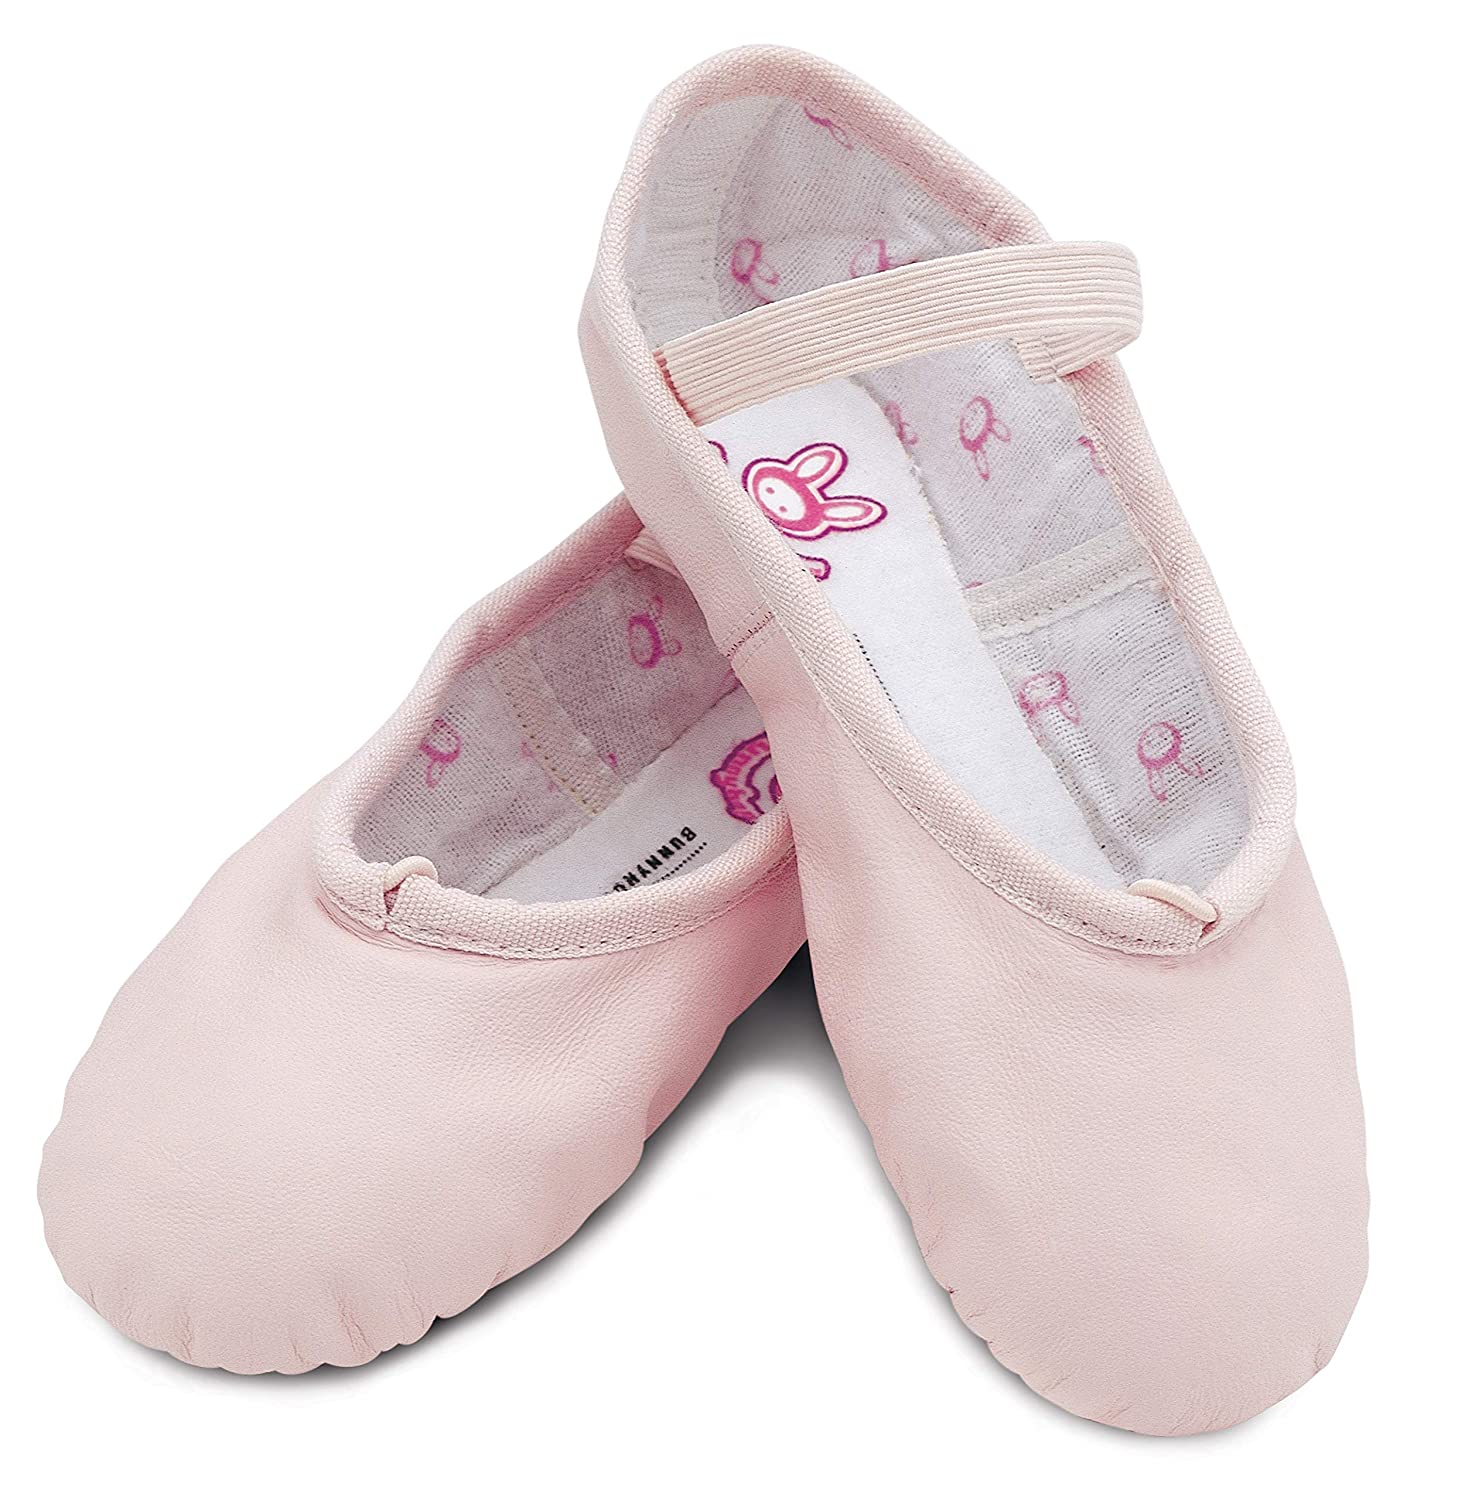 3 M US Big Kid Bloch Dance Girls Bunnyhop Full Sole Leather Ballet Slipper//Shoe Dance Pink